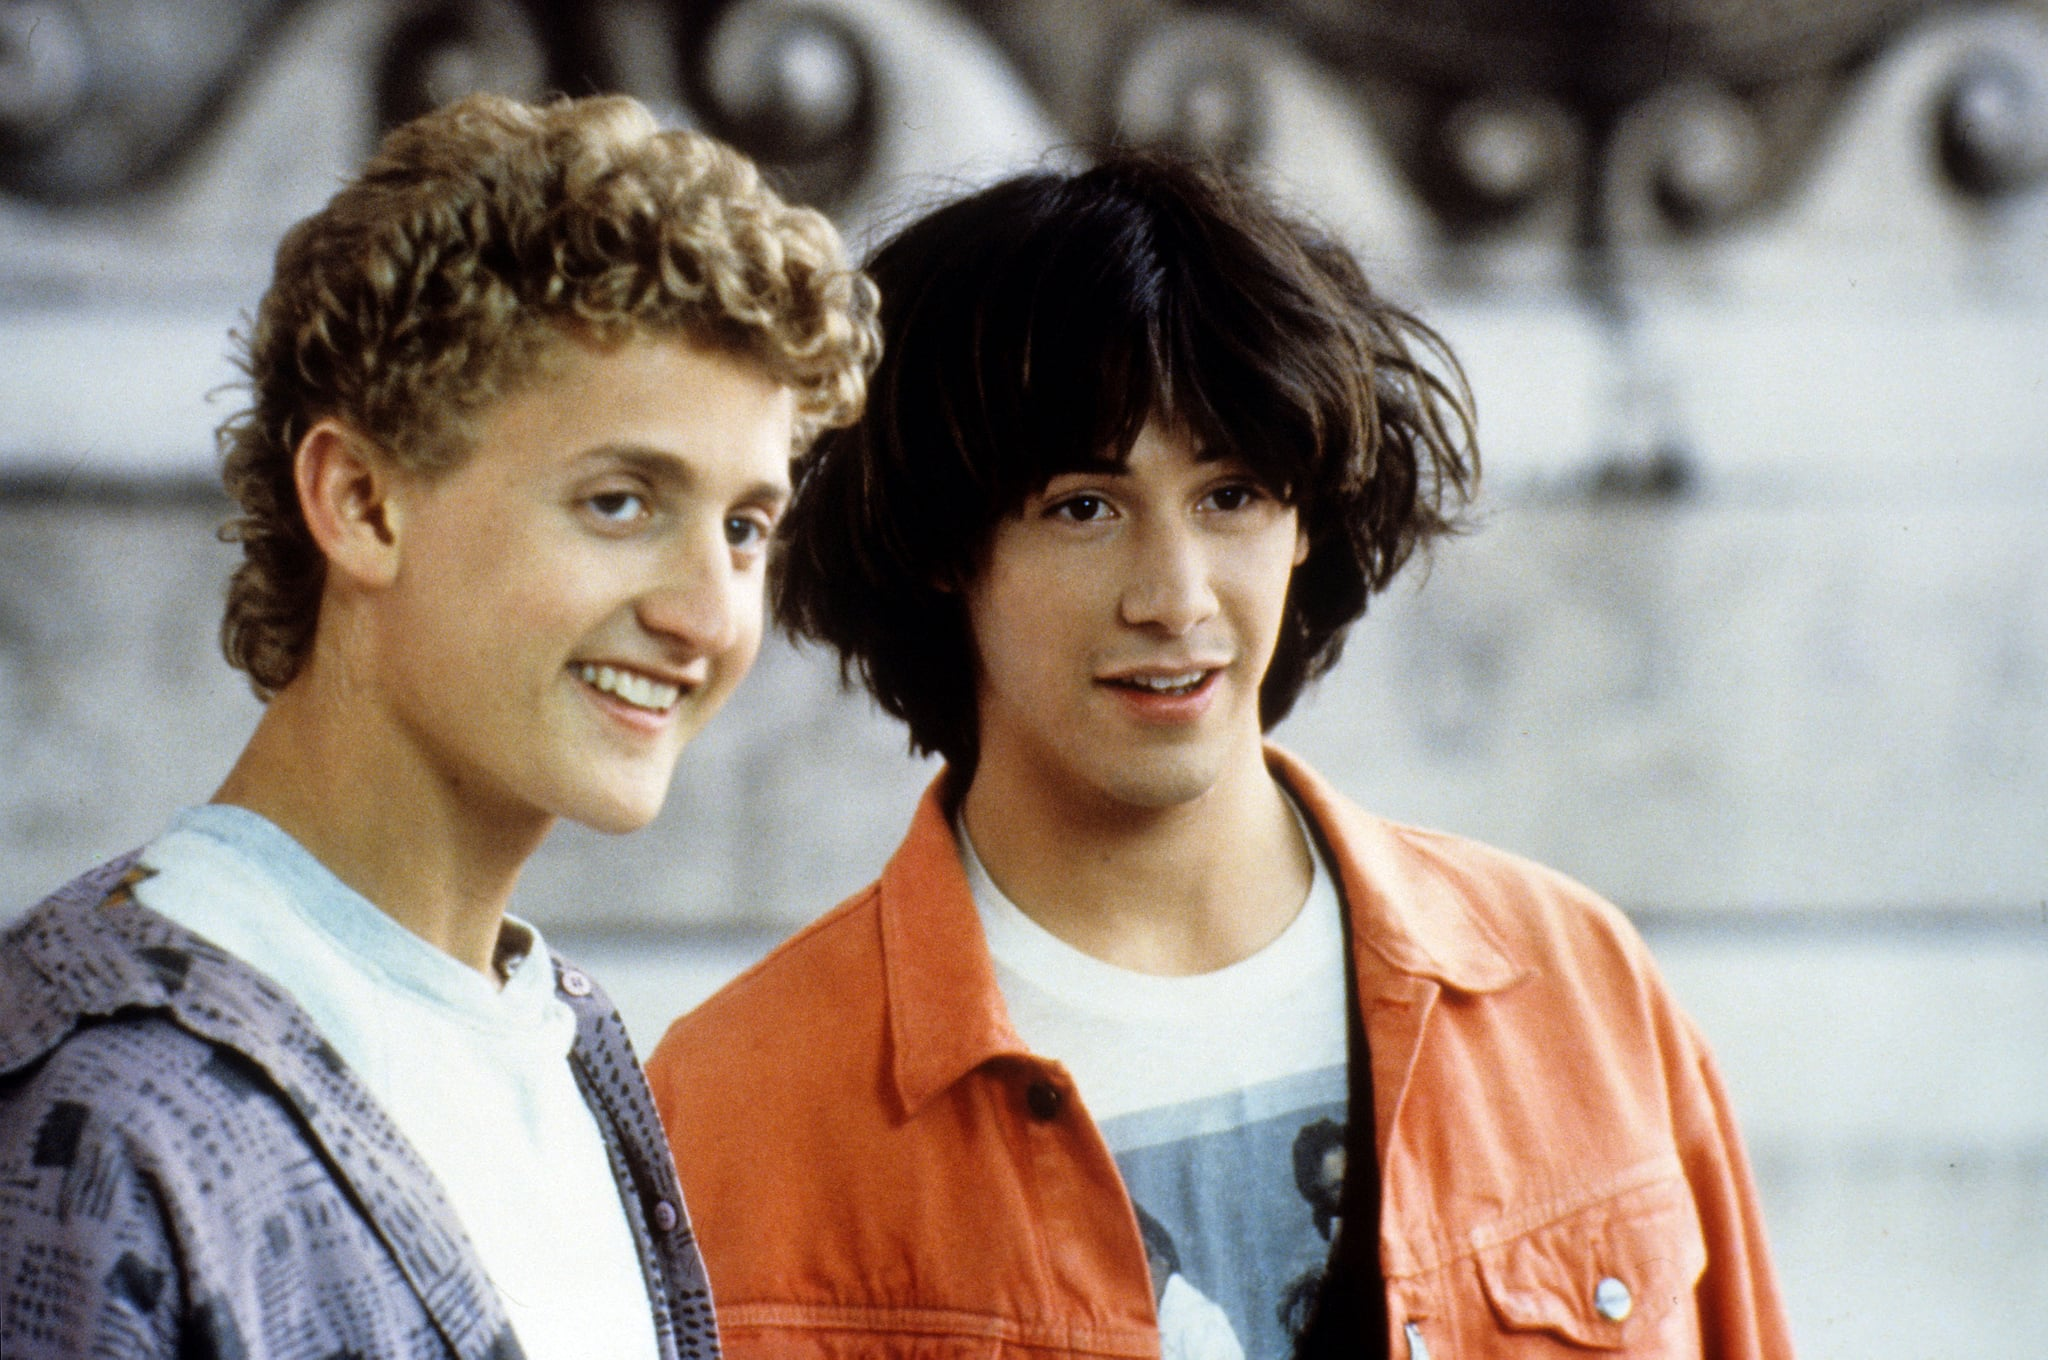 BILL AND TED'S EXCELLENT ADVENTURE, from left: Alex Winter, Keanu Reeves, 1989,  Orion/courtesy Everett Collection